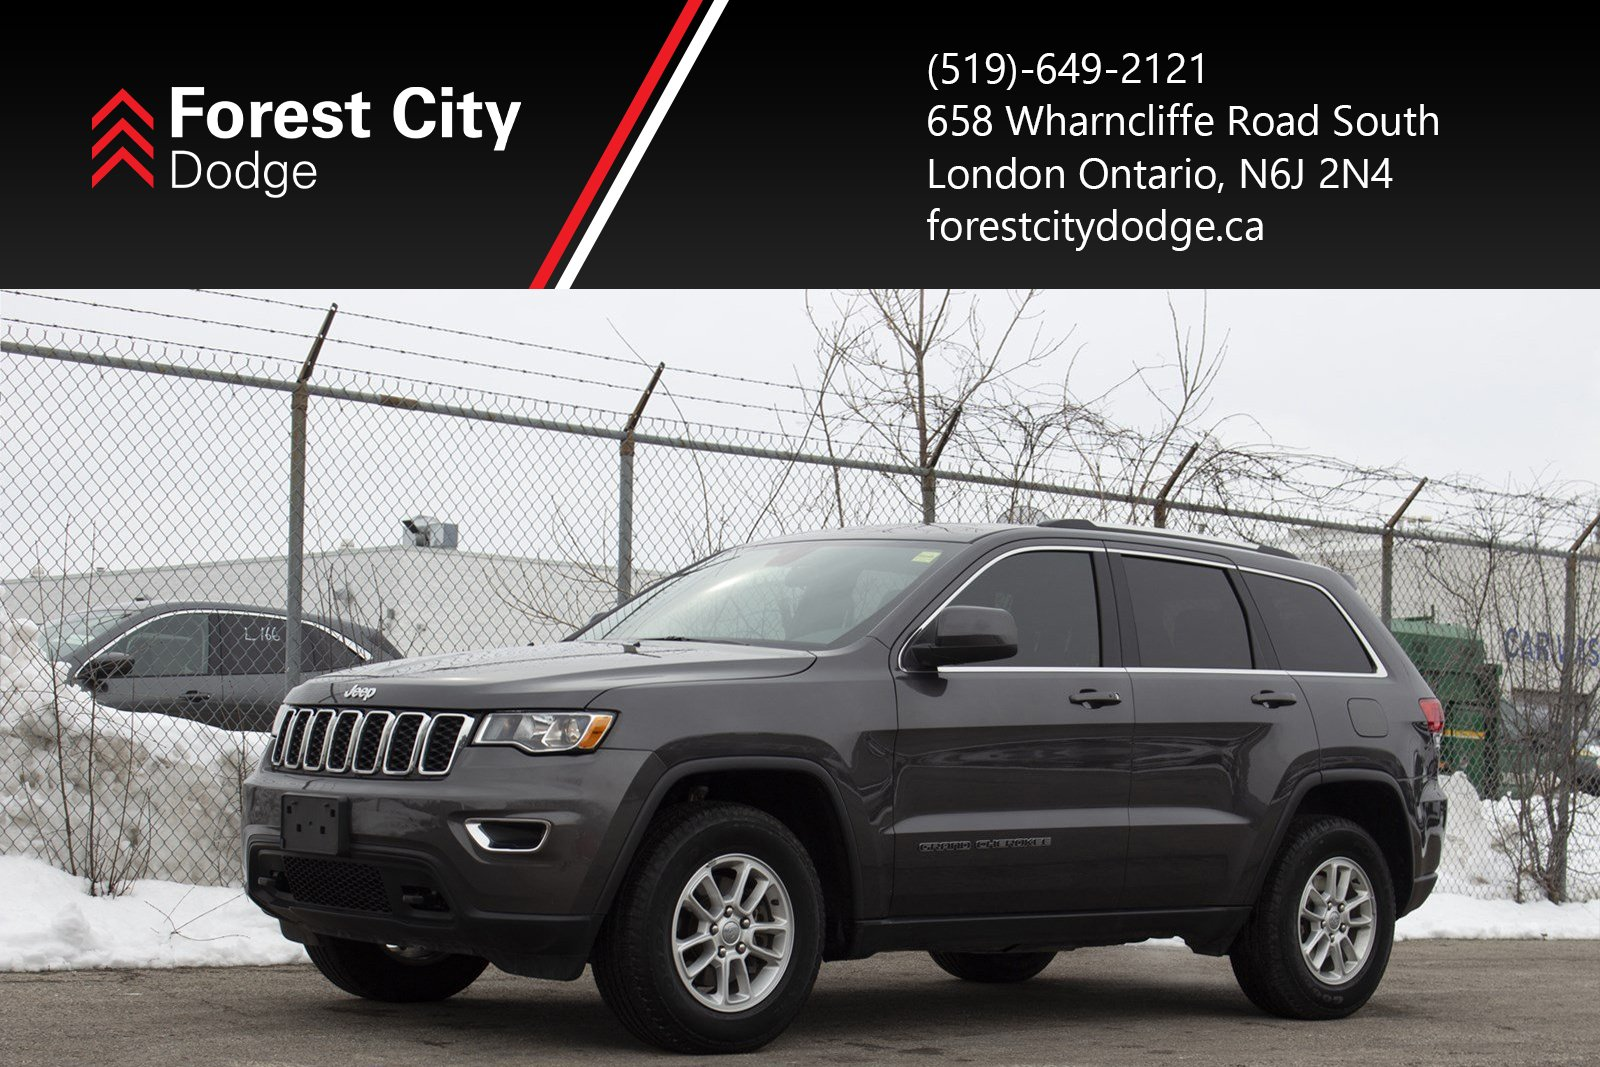 Pre-Owned 2018 Jeep Grand Cherokee Laredo - Previous Daily Rental